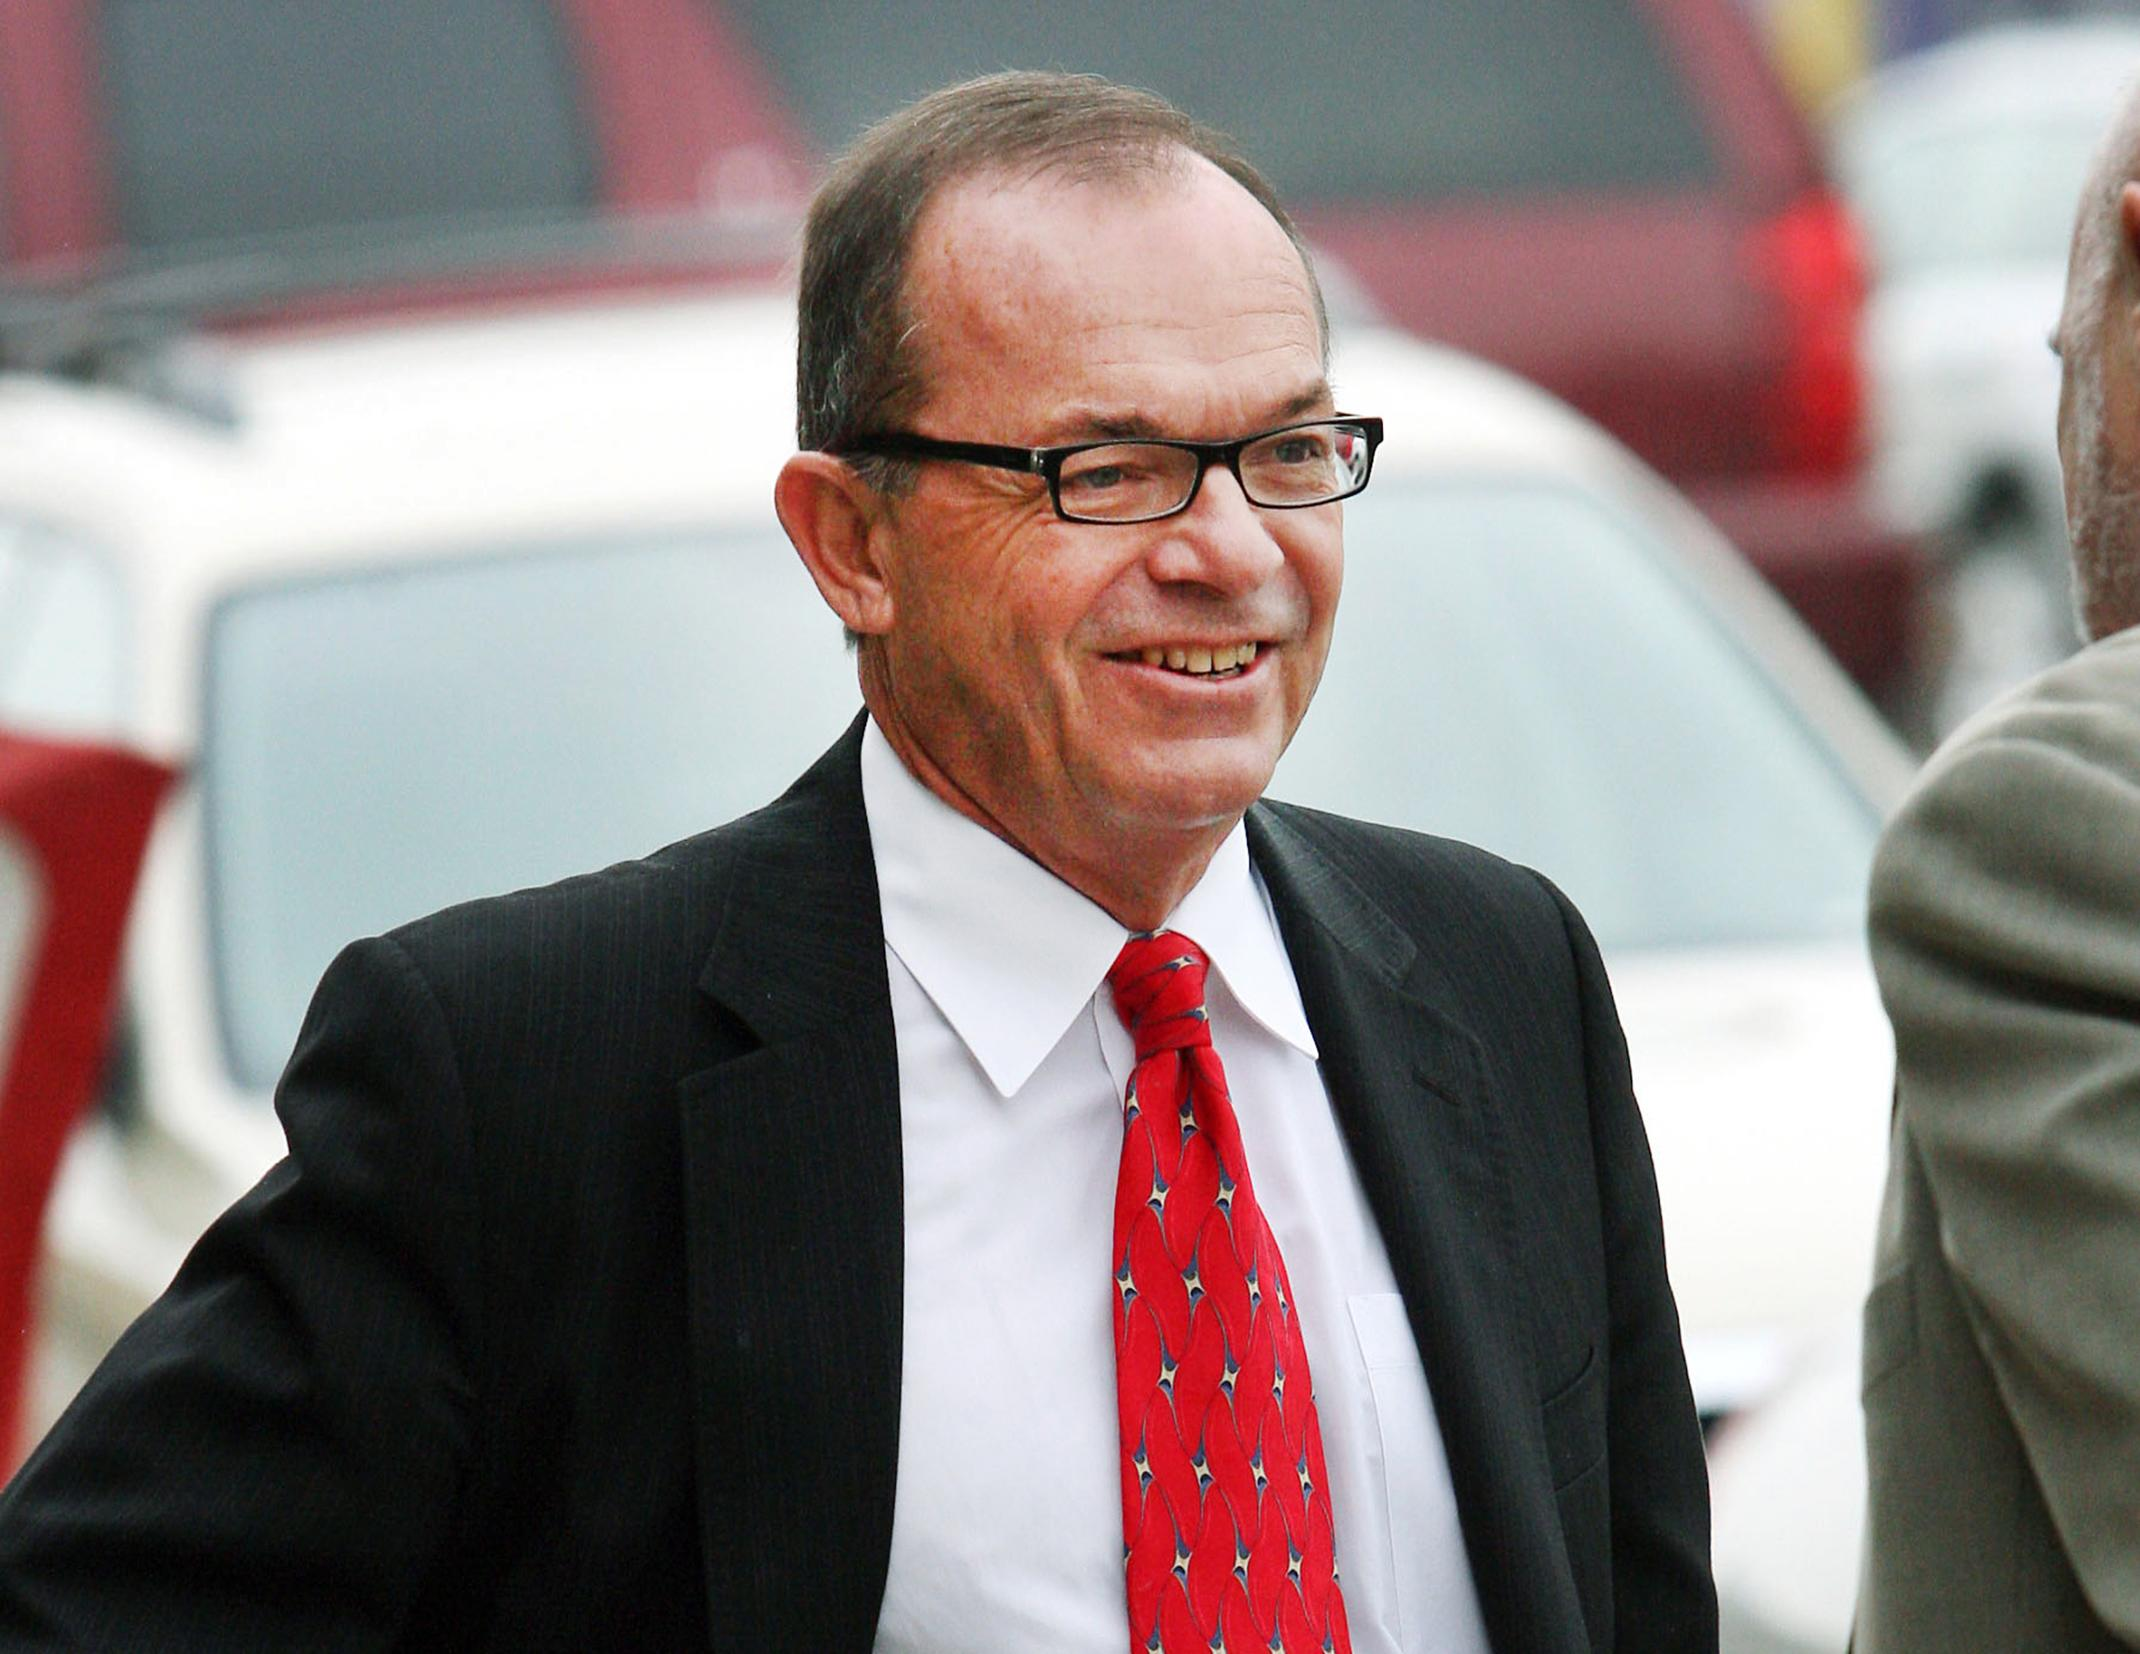 Court orders release of jailed real estate mogul